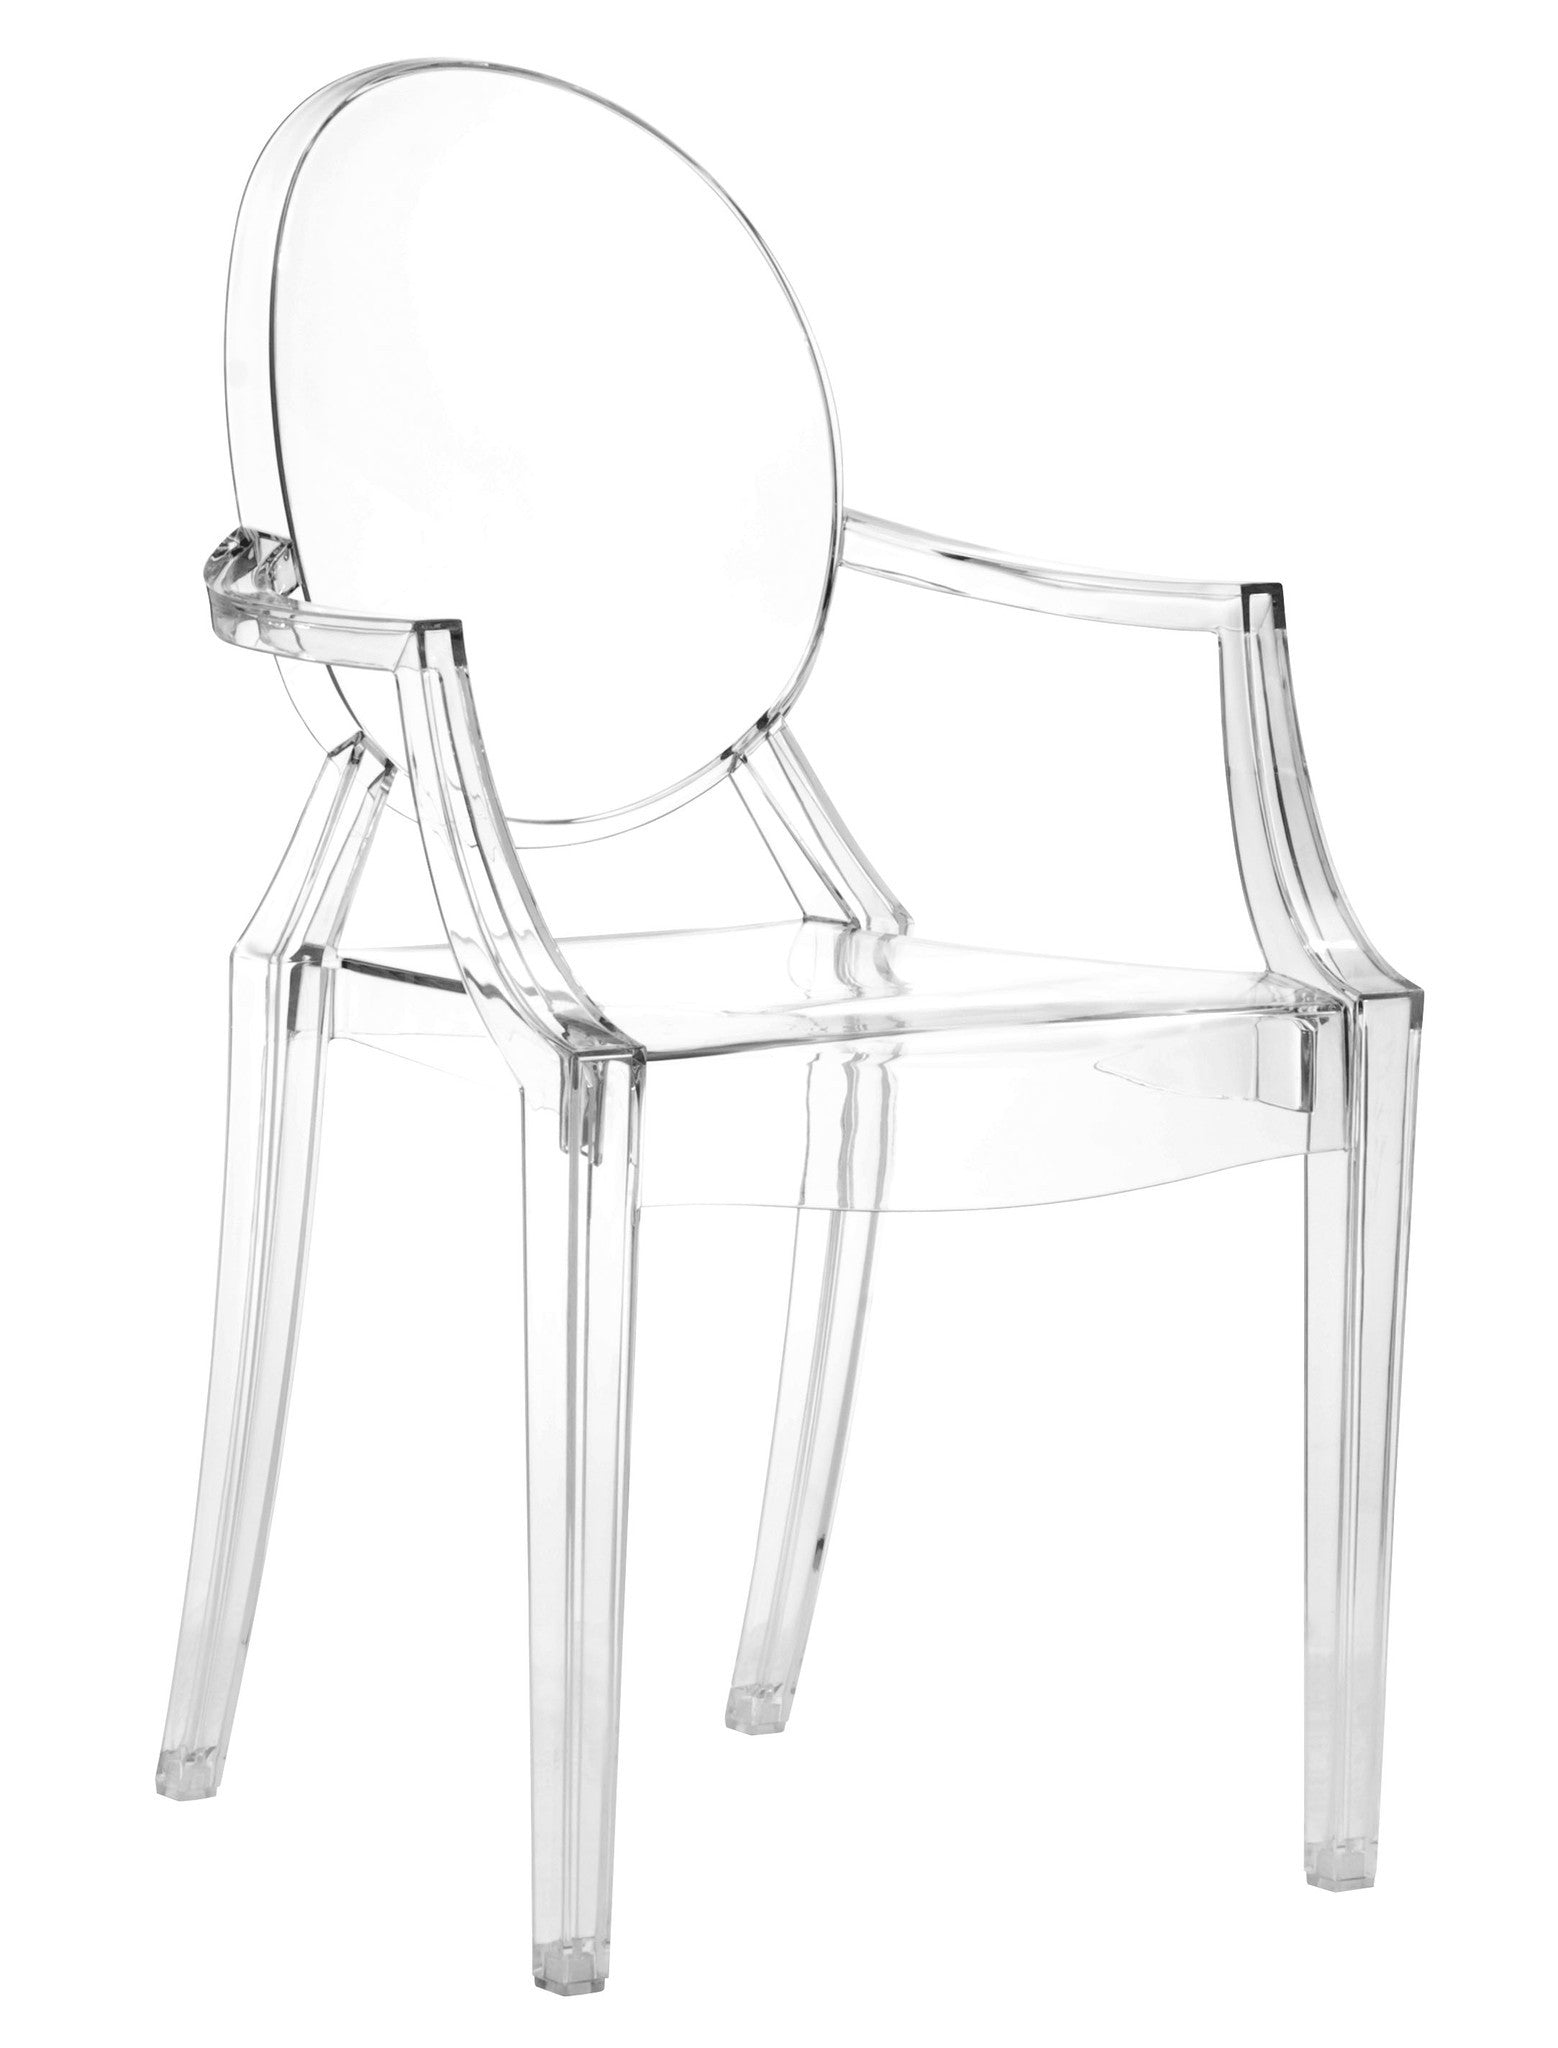 Anime Dining Chair In Transparent Polycarbonate (Set Of 4) Dining Chairs Alan  ...